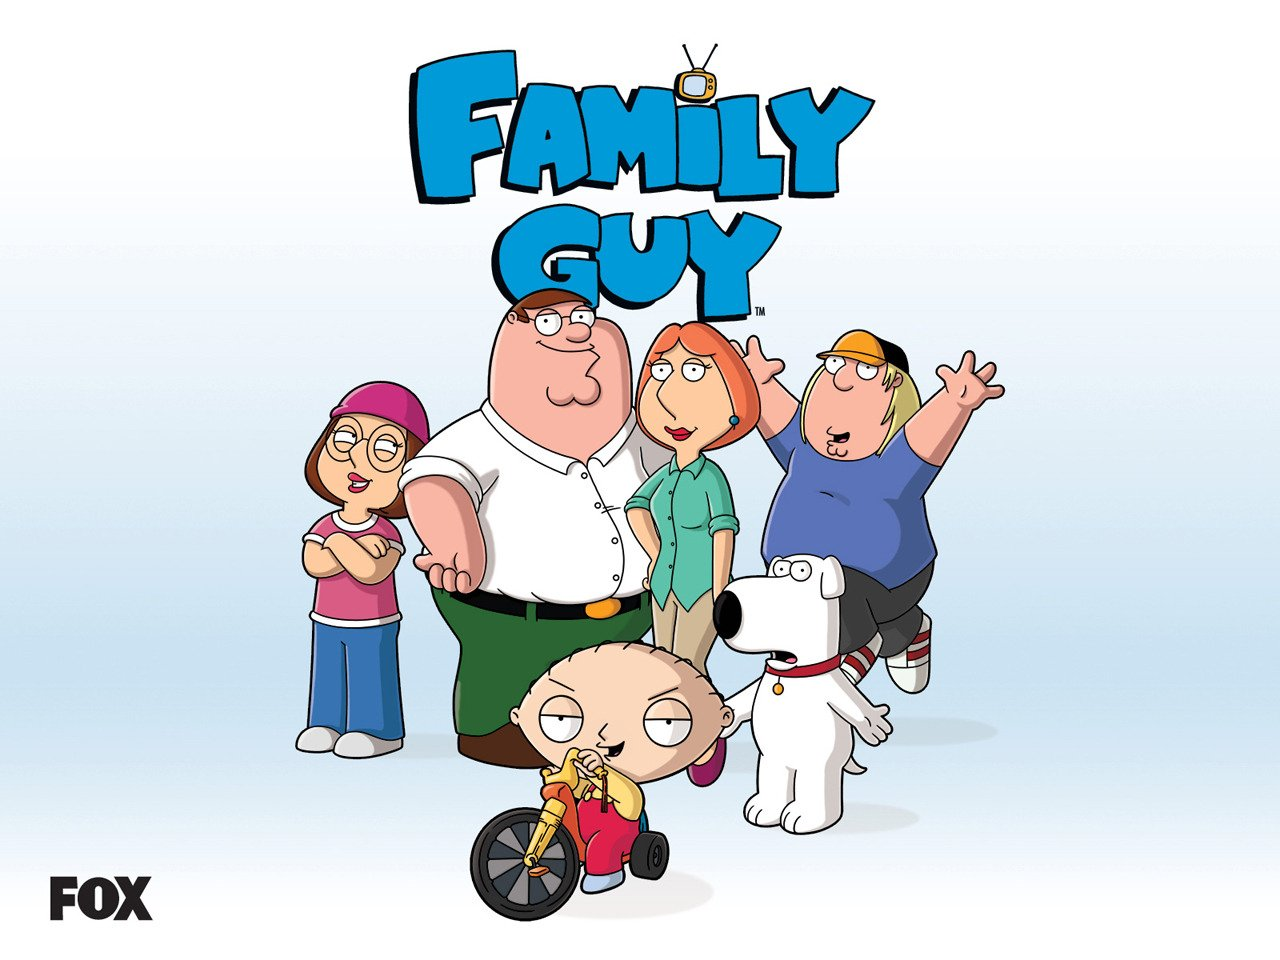 Family Guy 1999 wallpaper   TV Wallpapersnet 1280x960